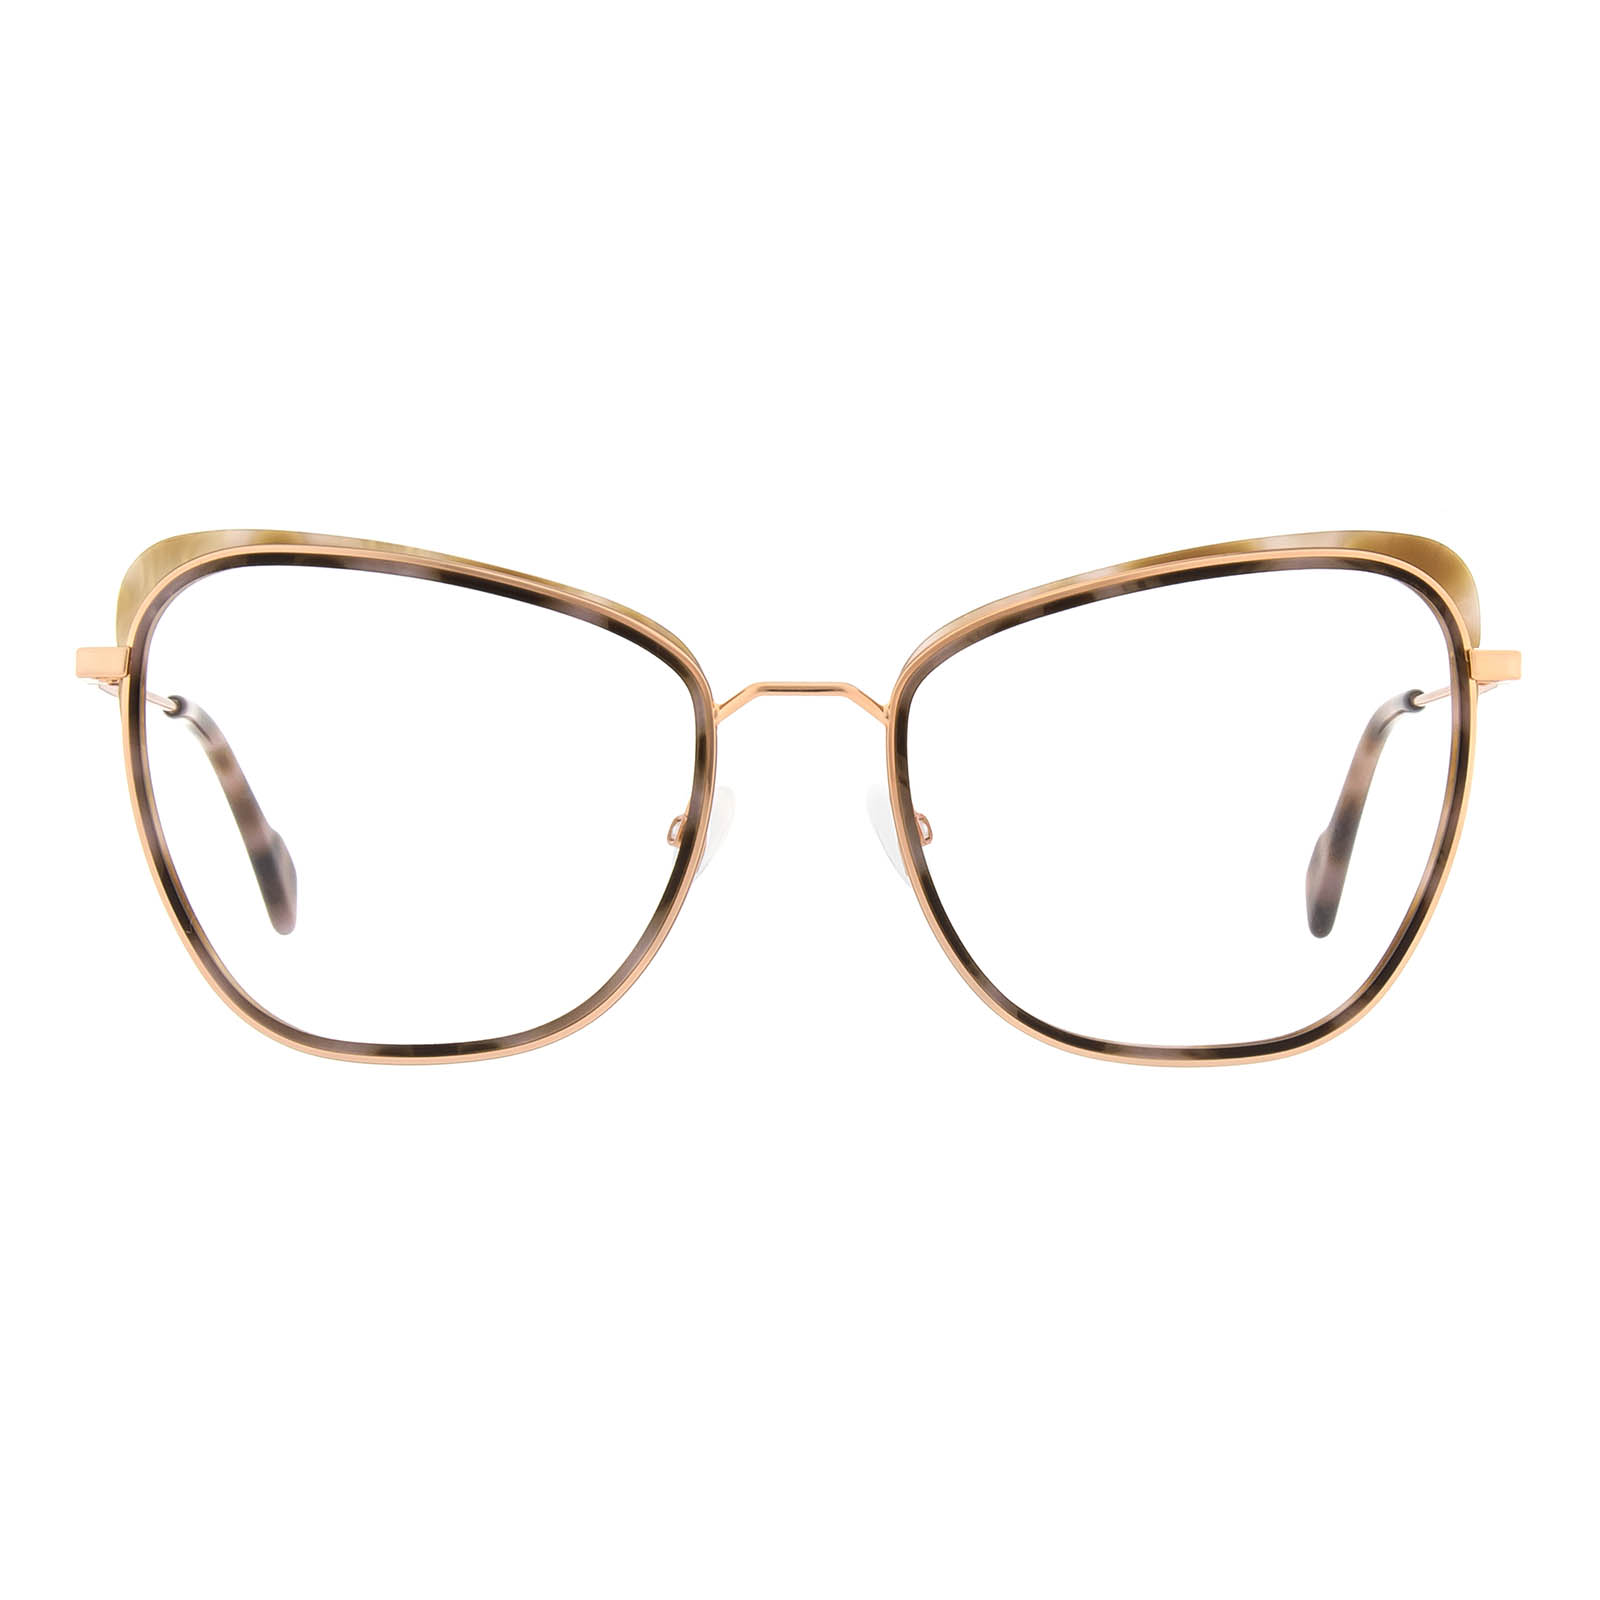 ANDY WOLF EYEWEAR_4765_03_front